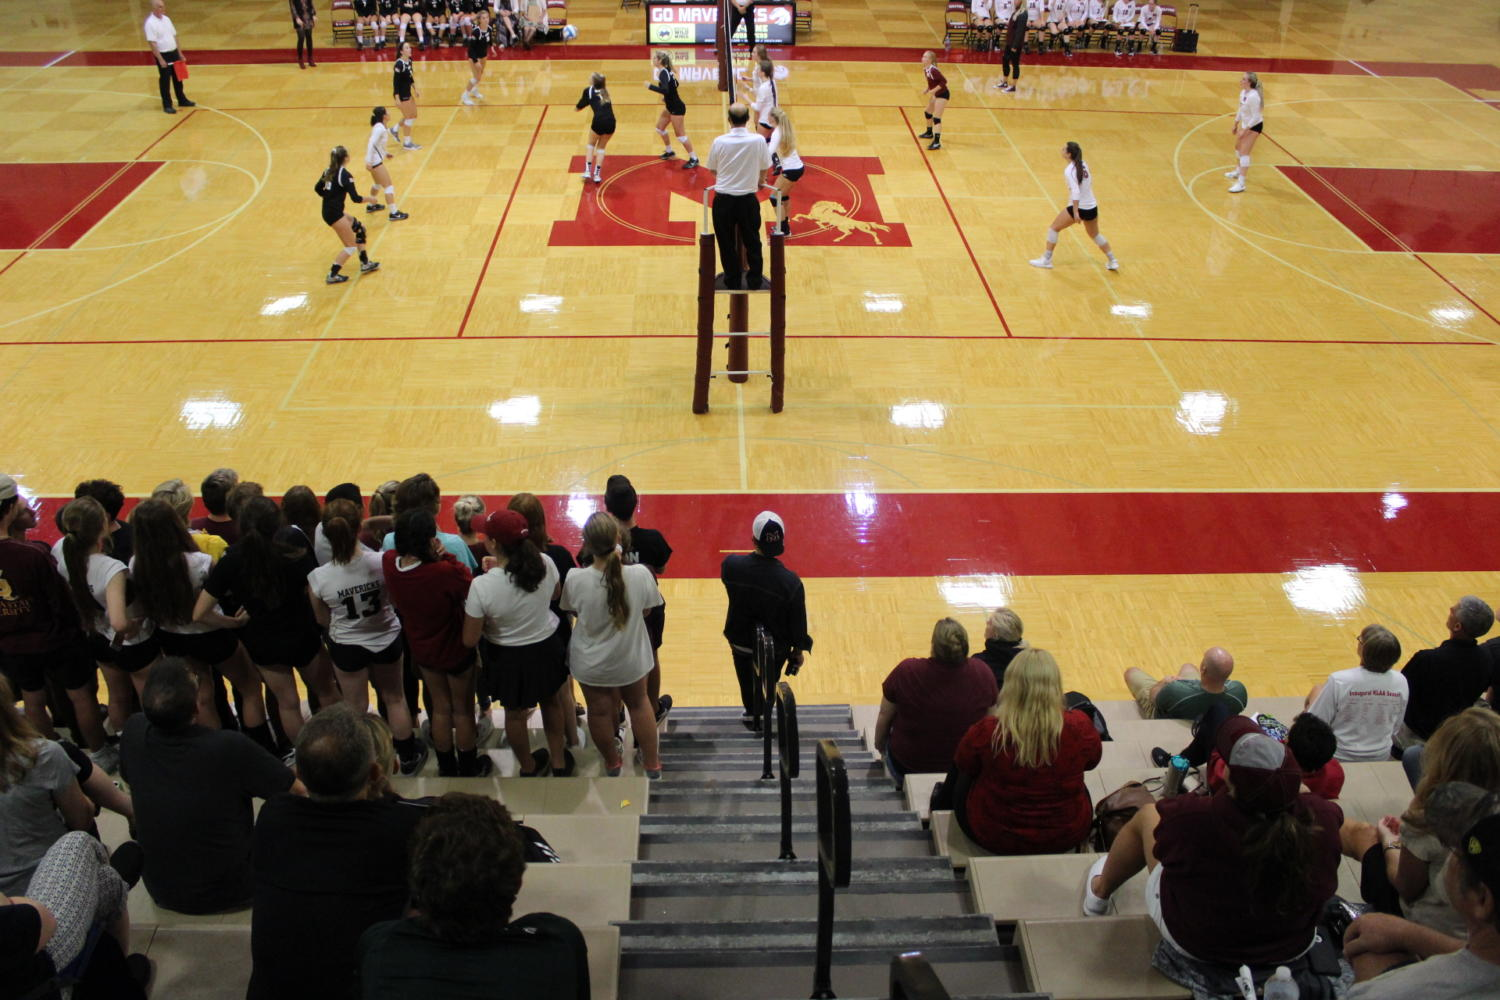 The+Milford+Volleyball+team+kicked+off+conference+play+with+a+win+over+Walled+Lake+Northern+in+5+sets.+